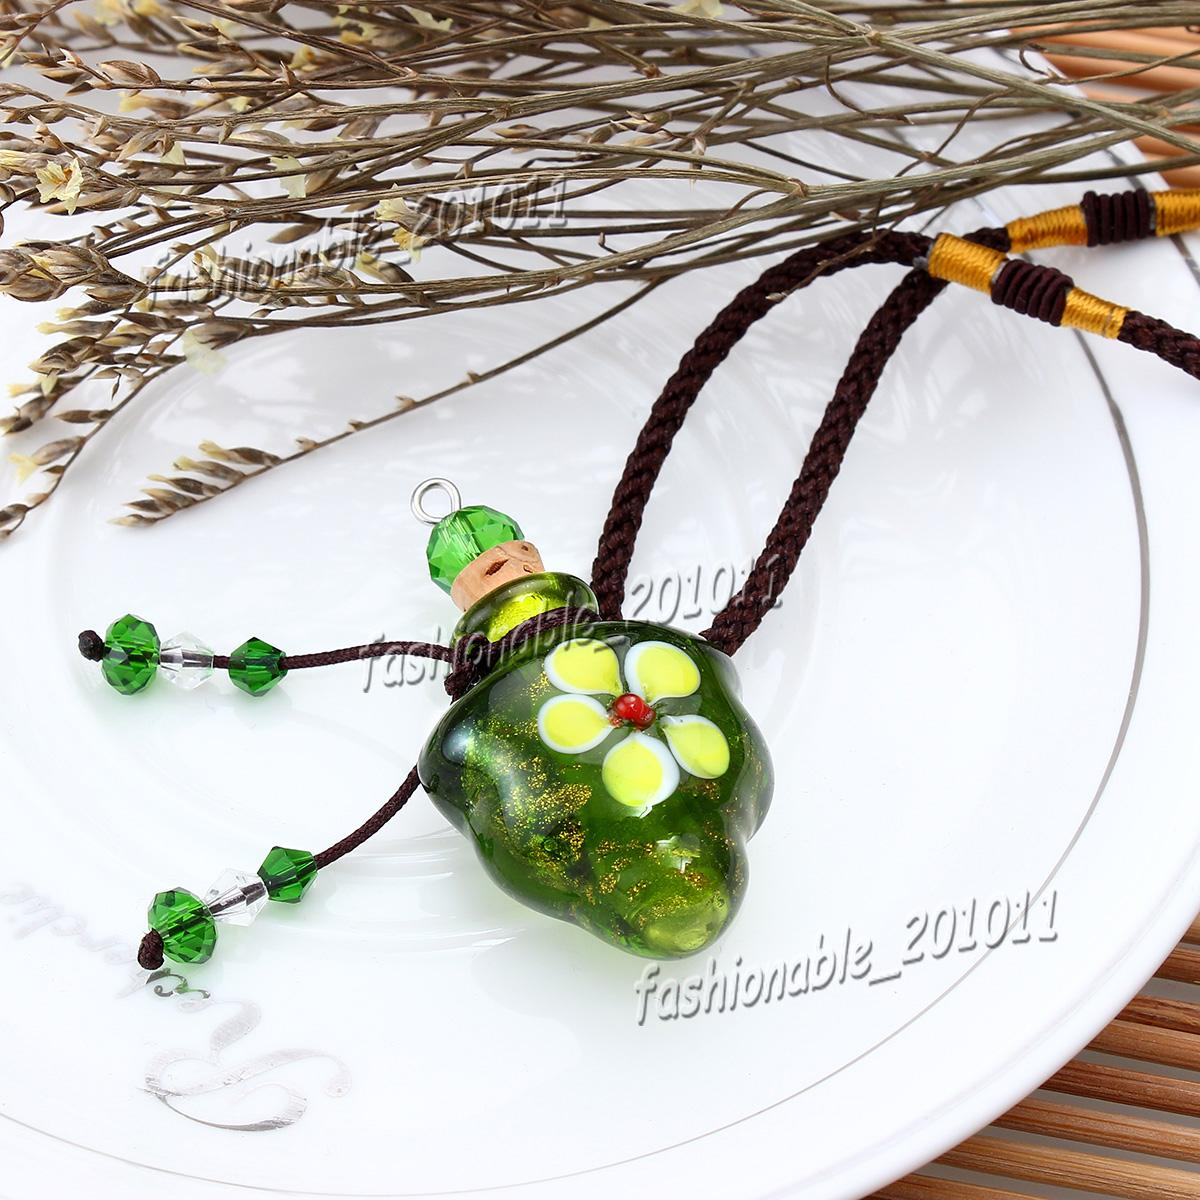 Glass essential oil diffuser necklaces flowers small vial pendant necklace aromatherapy pendant vintage perfume bottle pendant necklaces